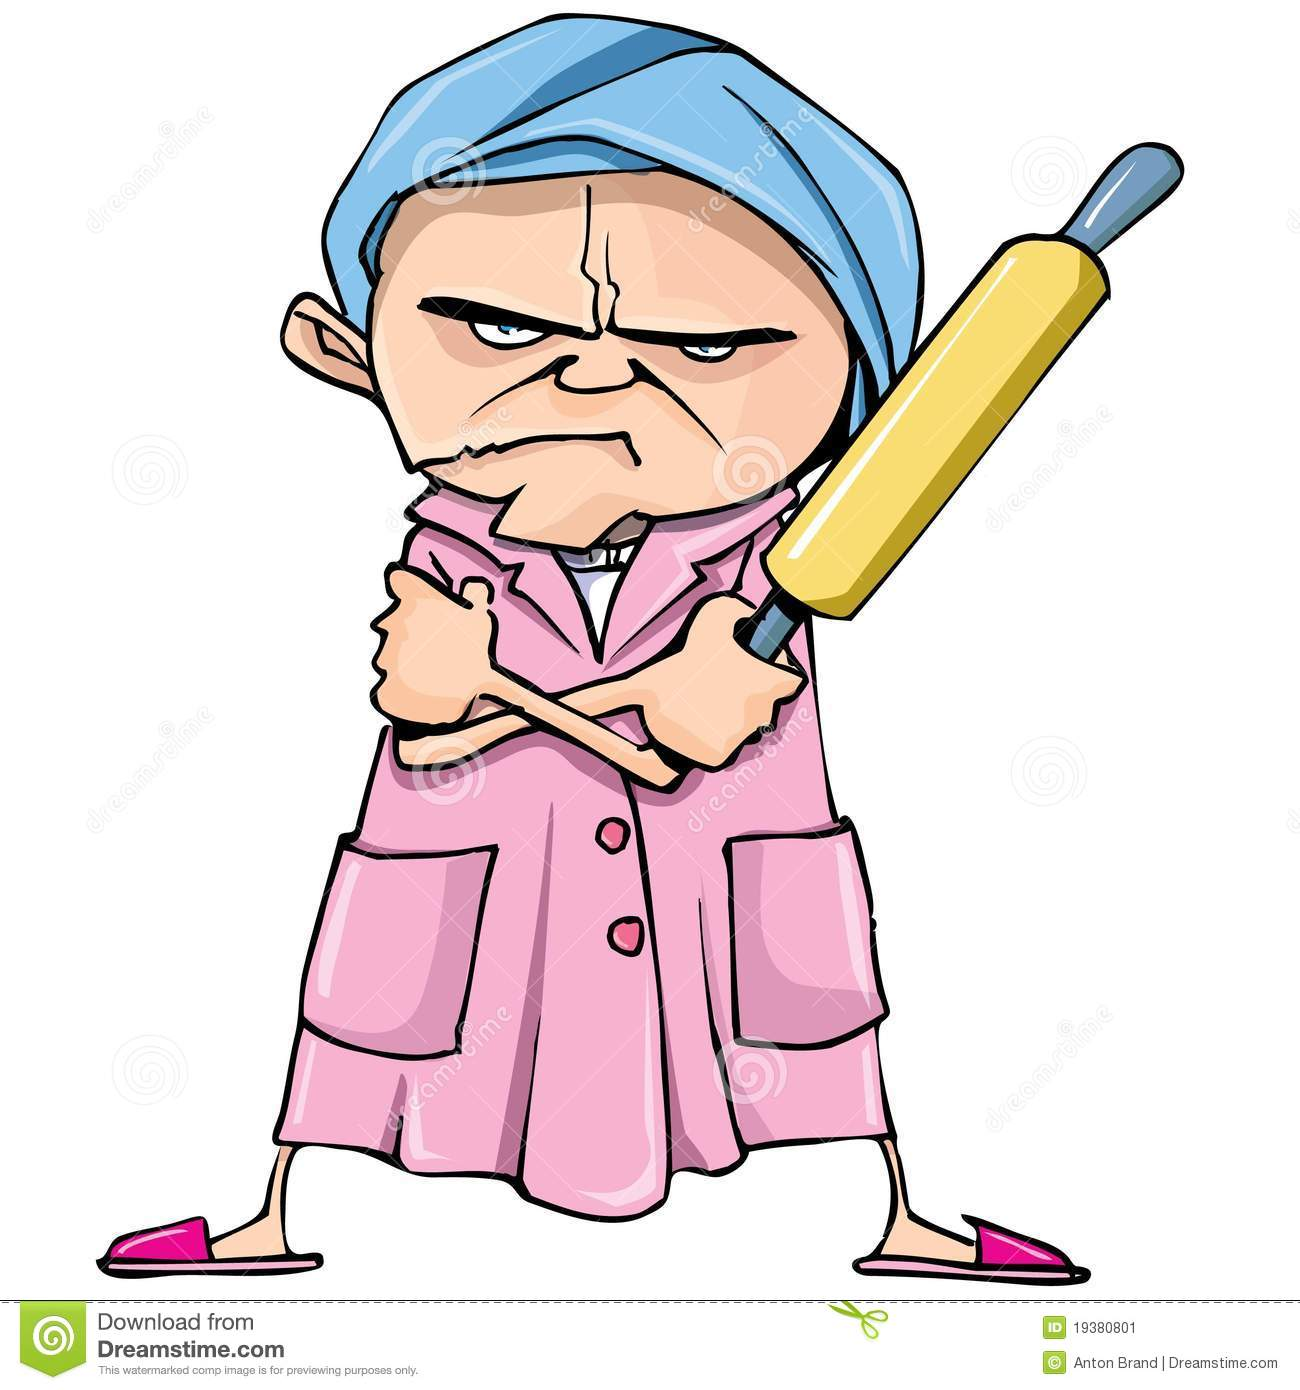 Angry woman pic clipart image black and white library Angry woman clipart 2 » Clipart Station image black and white library